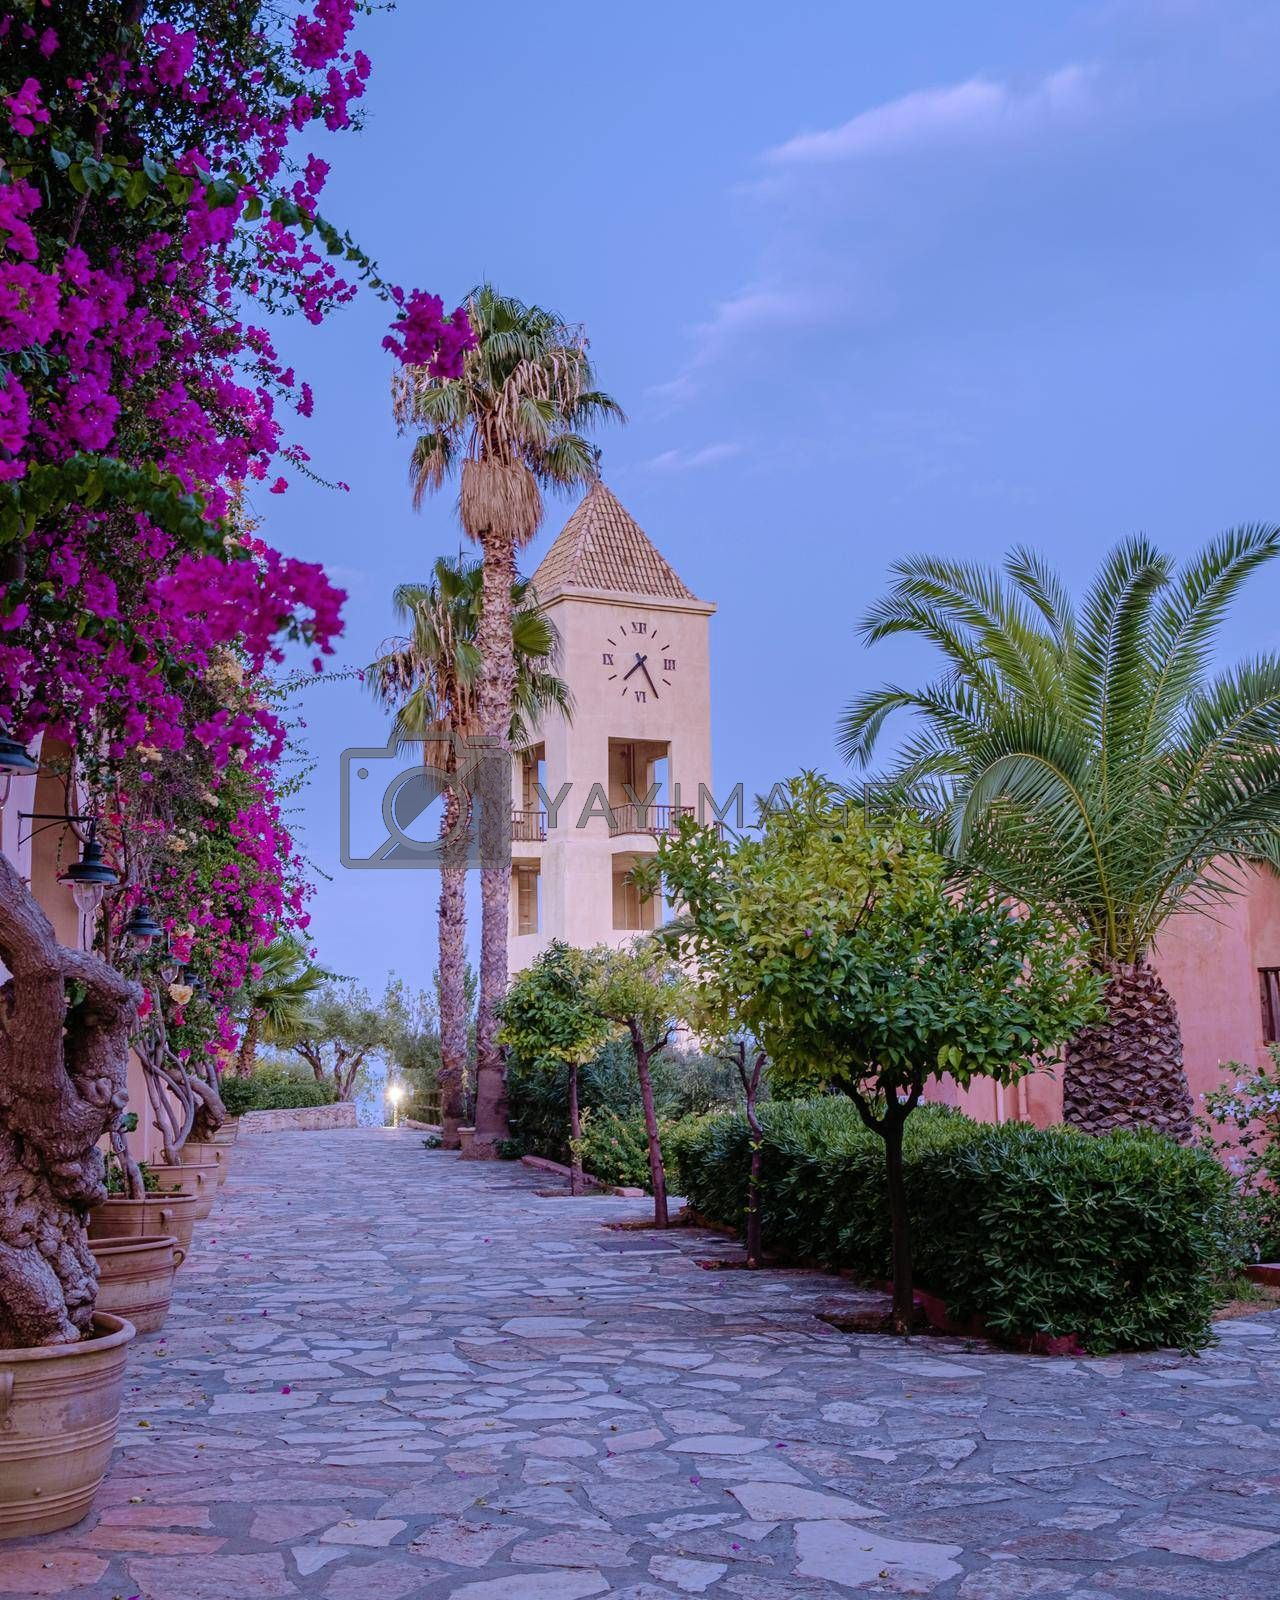 Crete Greece, Candia park village a luxury holiday village in Crete Greece by the ocean in traditional colors. Luxury holiday resort with pool